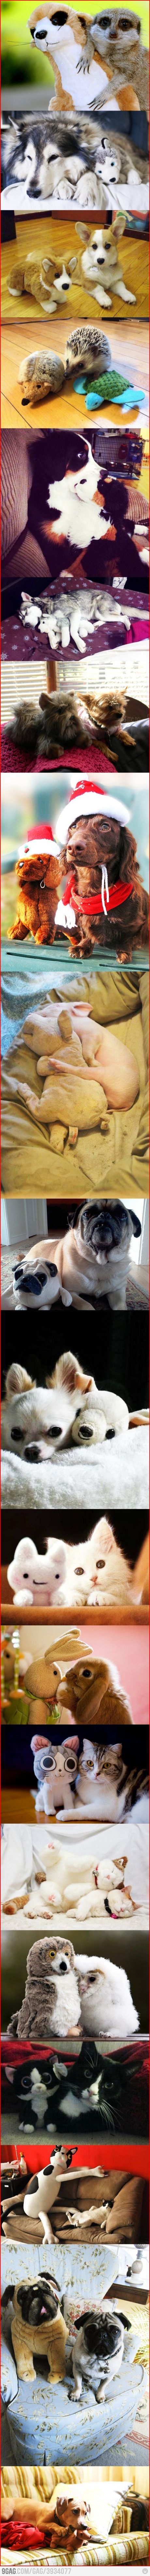 Animals with their stuffed animals!